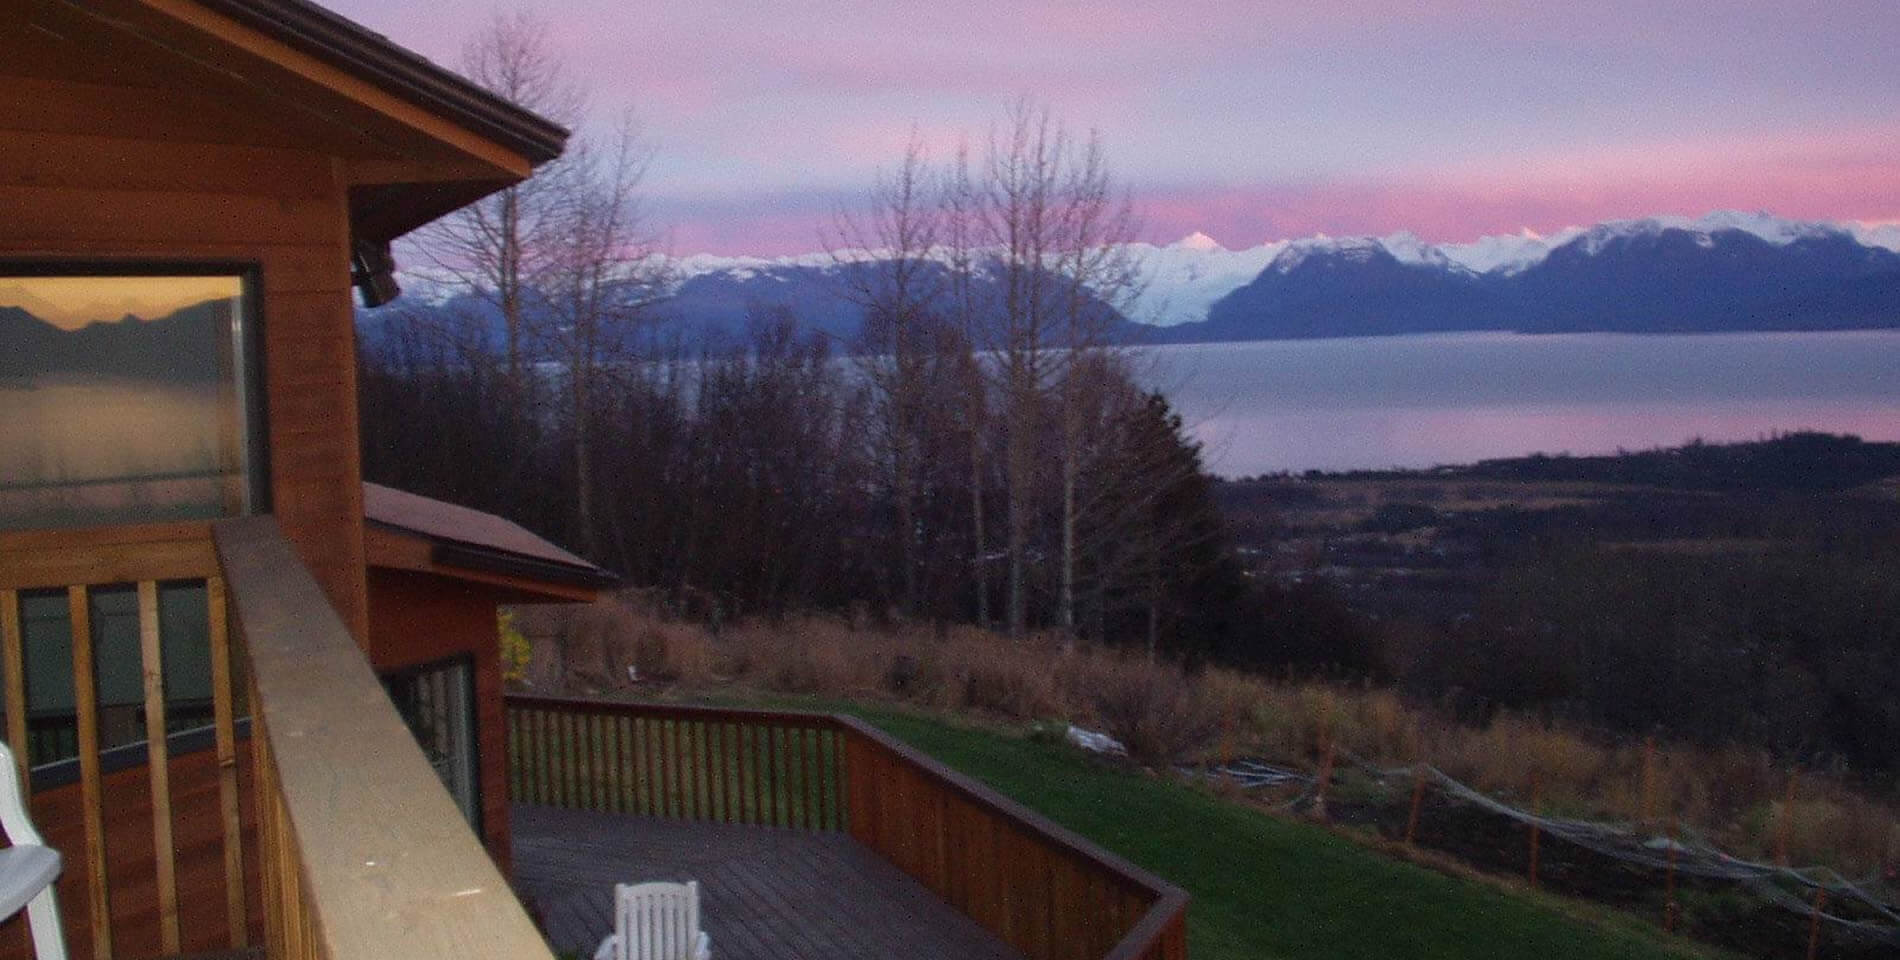 View from the rose room balcony showing the yard and a bright pink sunset over snow-capped mountain peaks